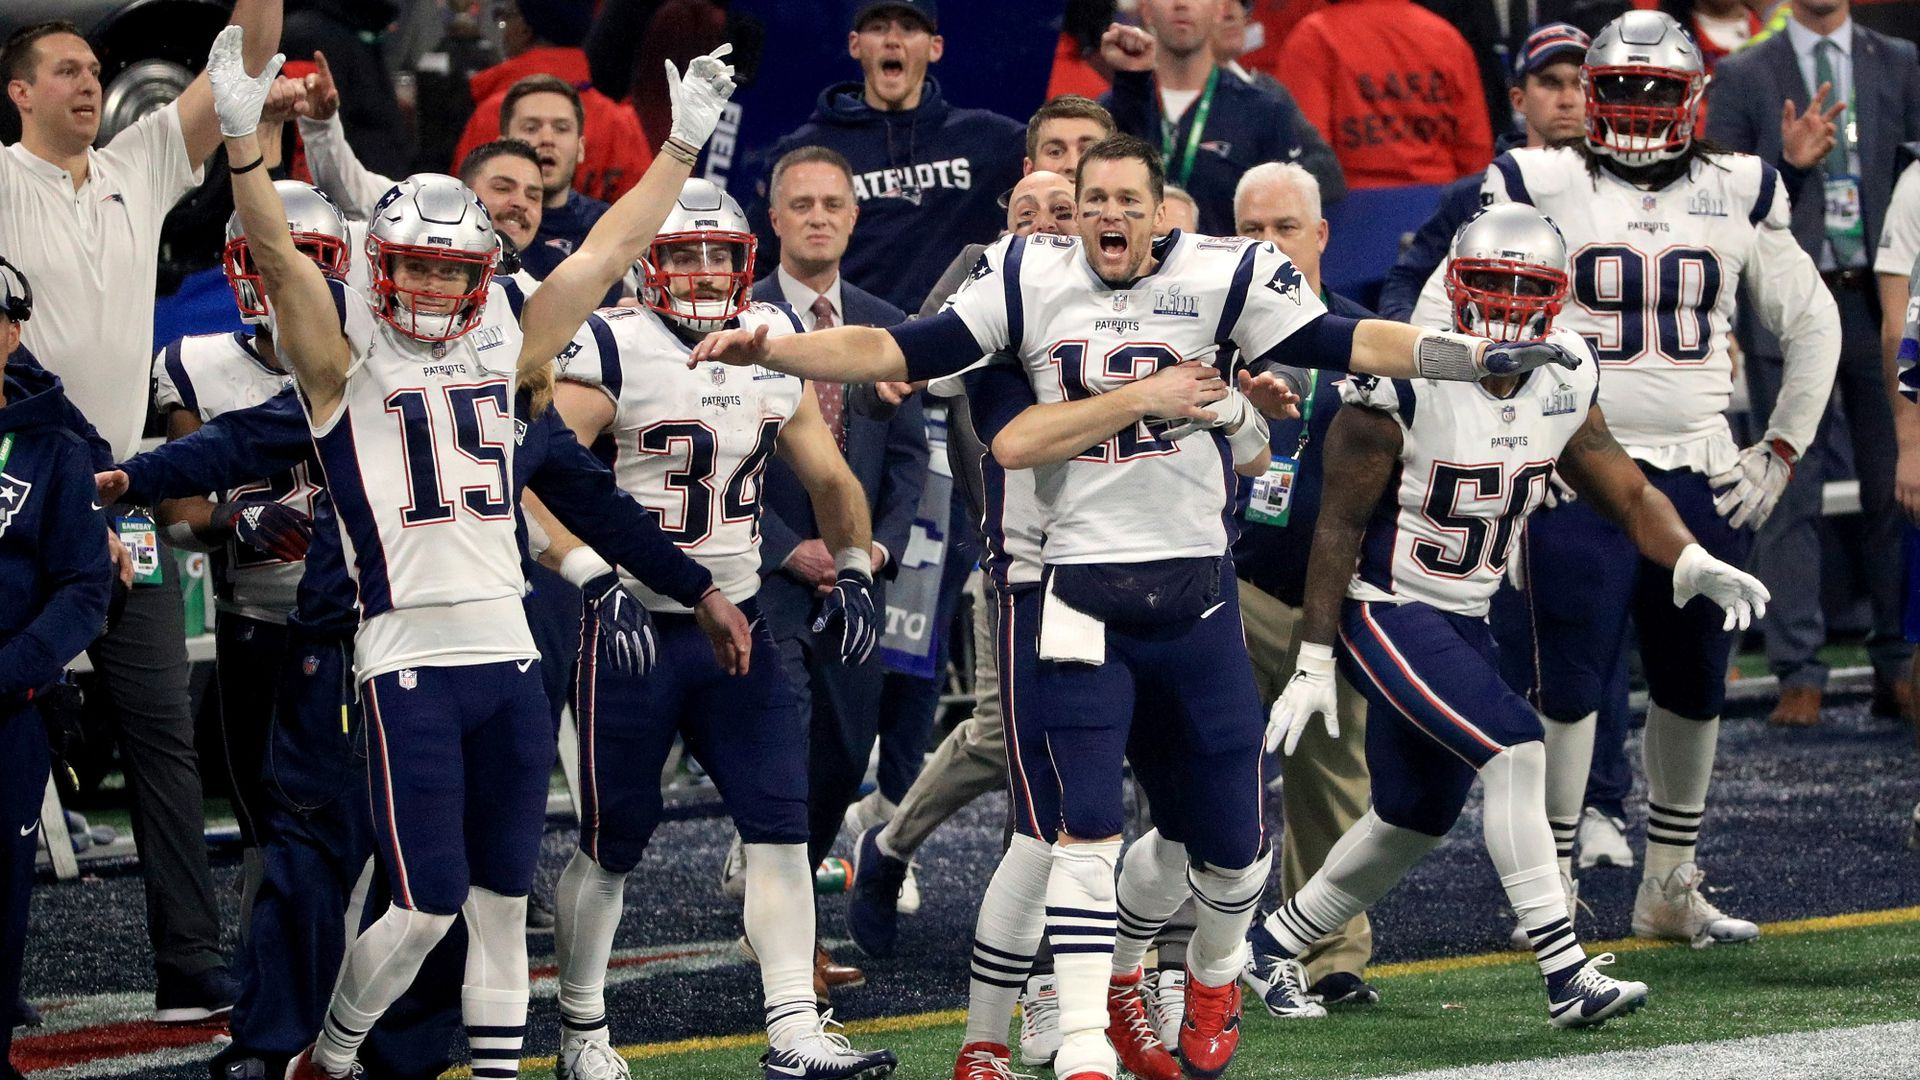 The Patriots celebrate after winning the Super Bowl